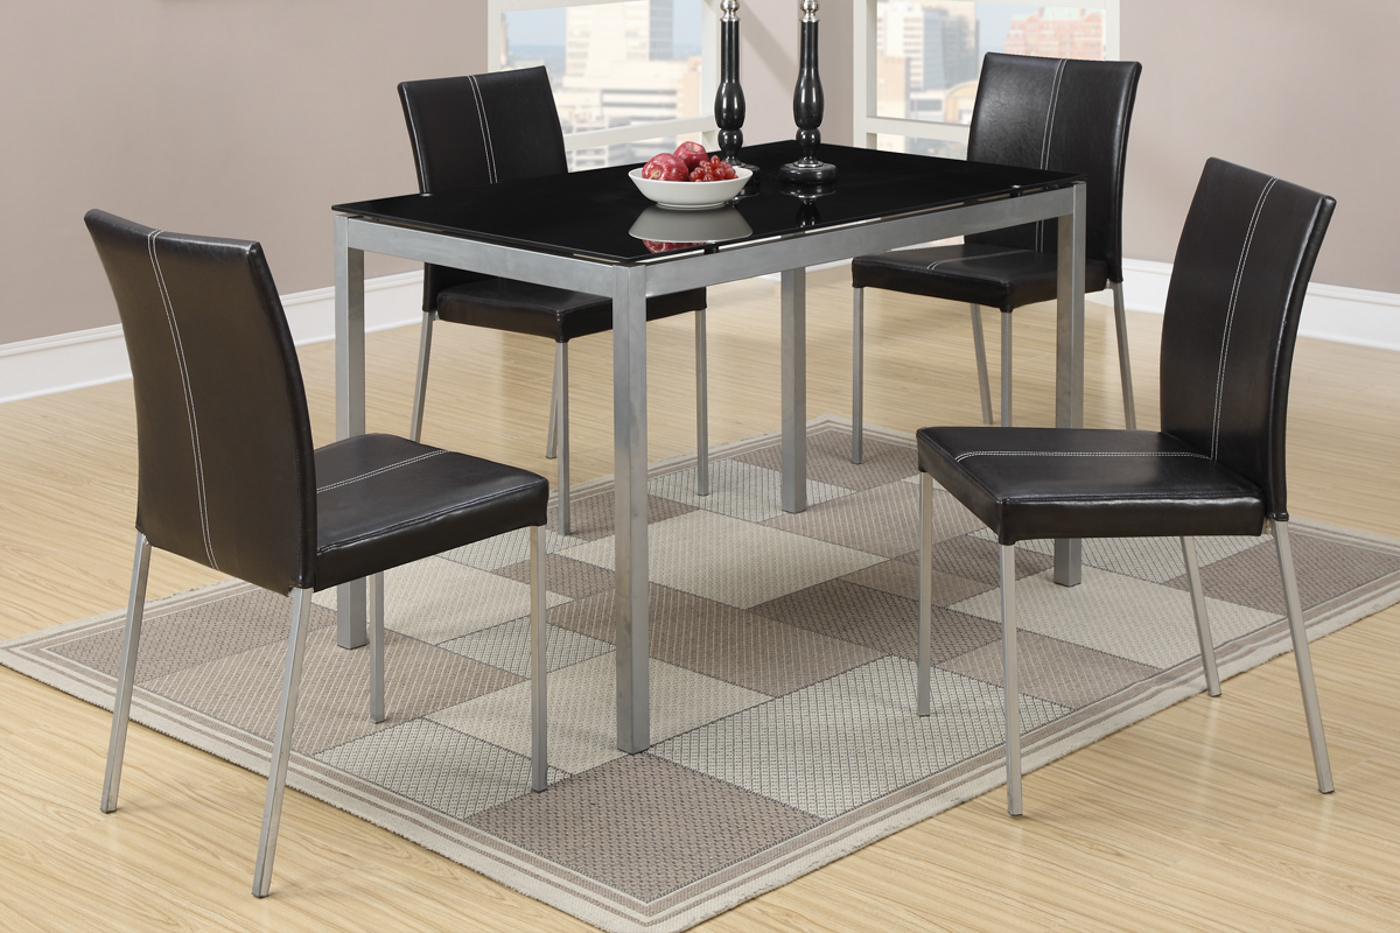 poundex f metal kitchen chairs Silver Metal Dining Table and Chair Set